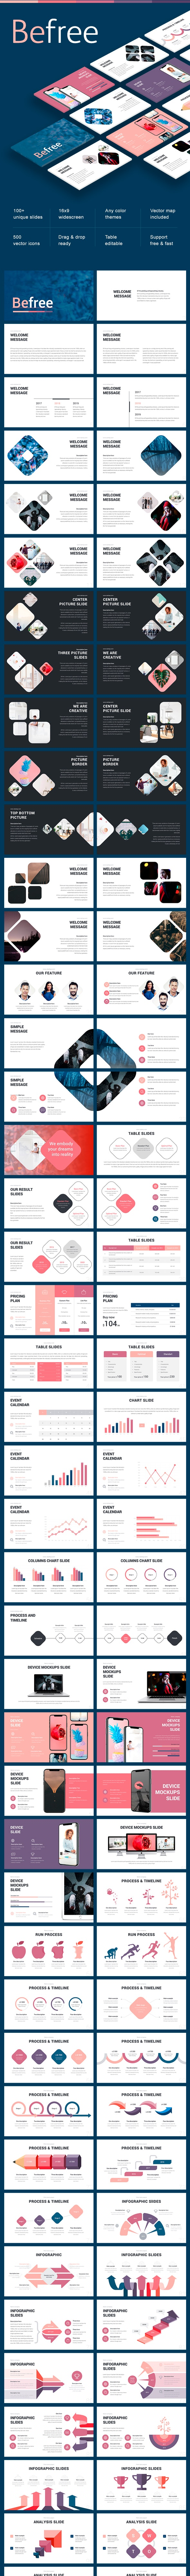 Befree Minimal Keynote Template - Business Keynote Templates